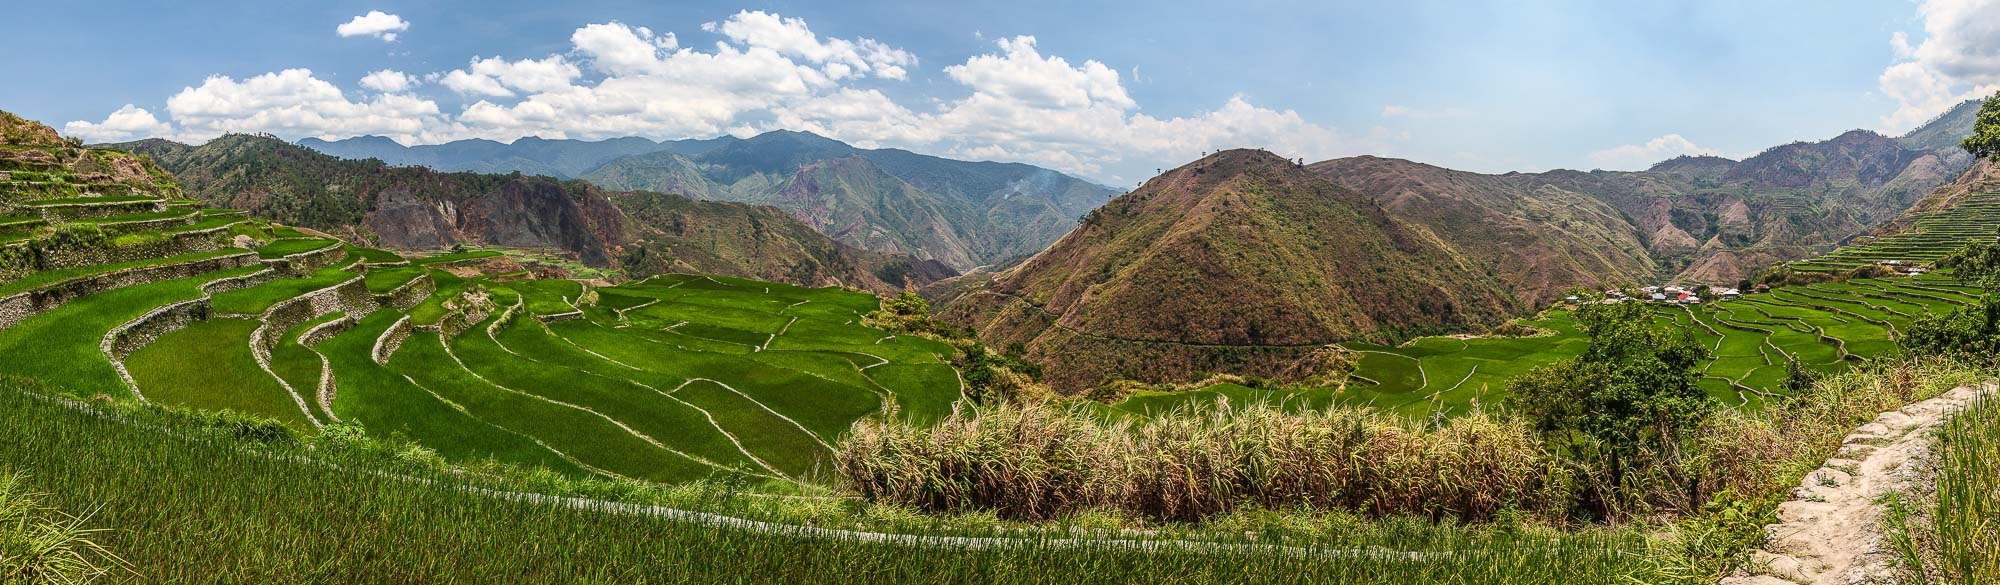 Prilippines tropical panoramas - Rice terraces of Northern Luzon